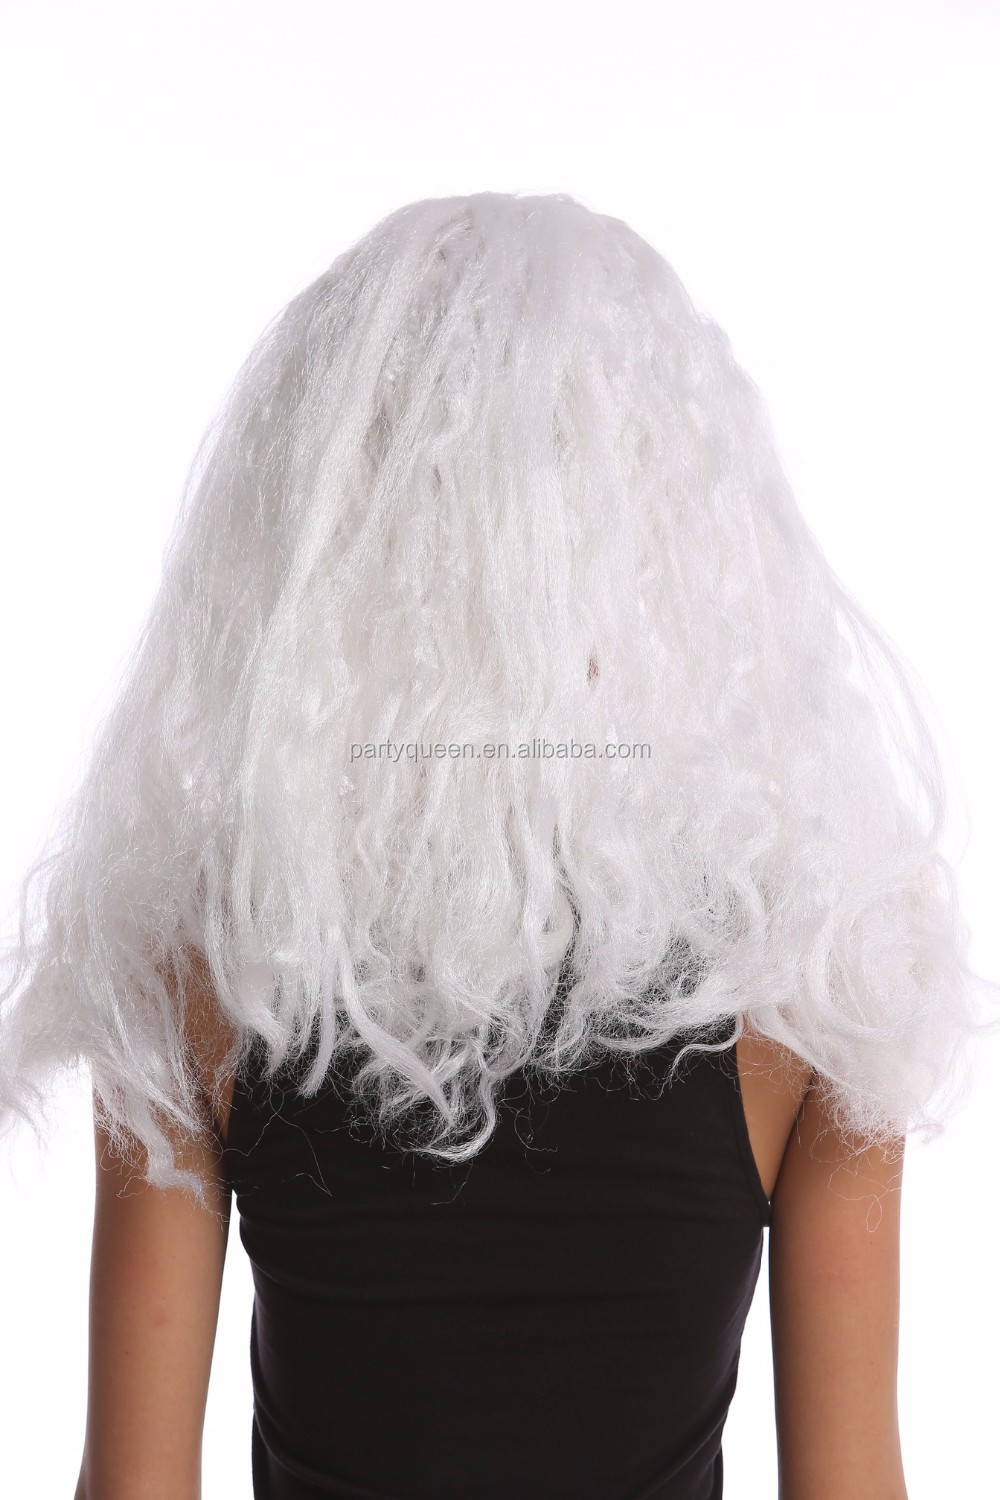 Party white braids princess wigs P-W250